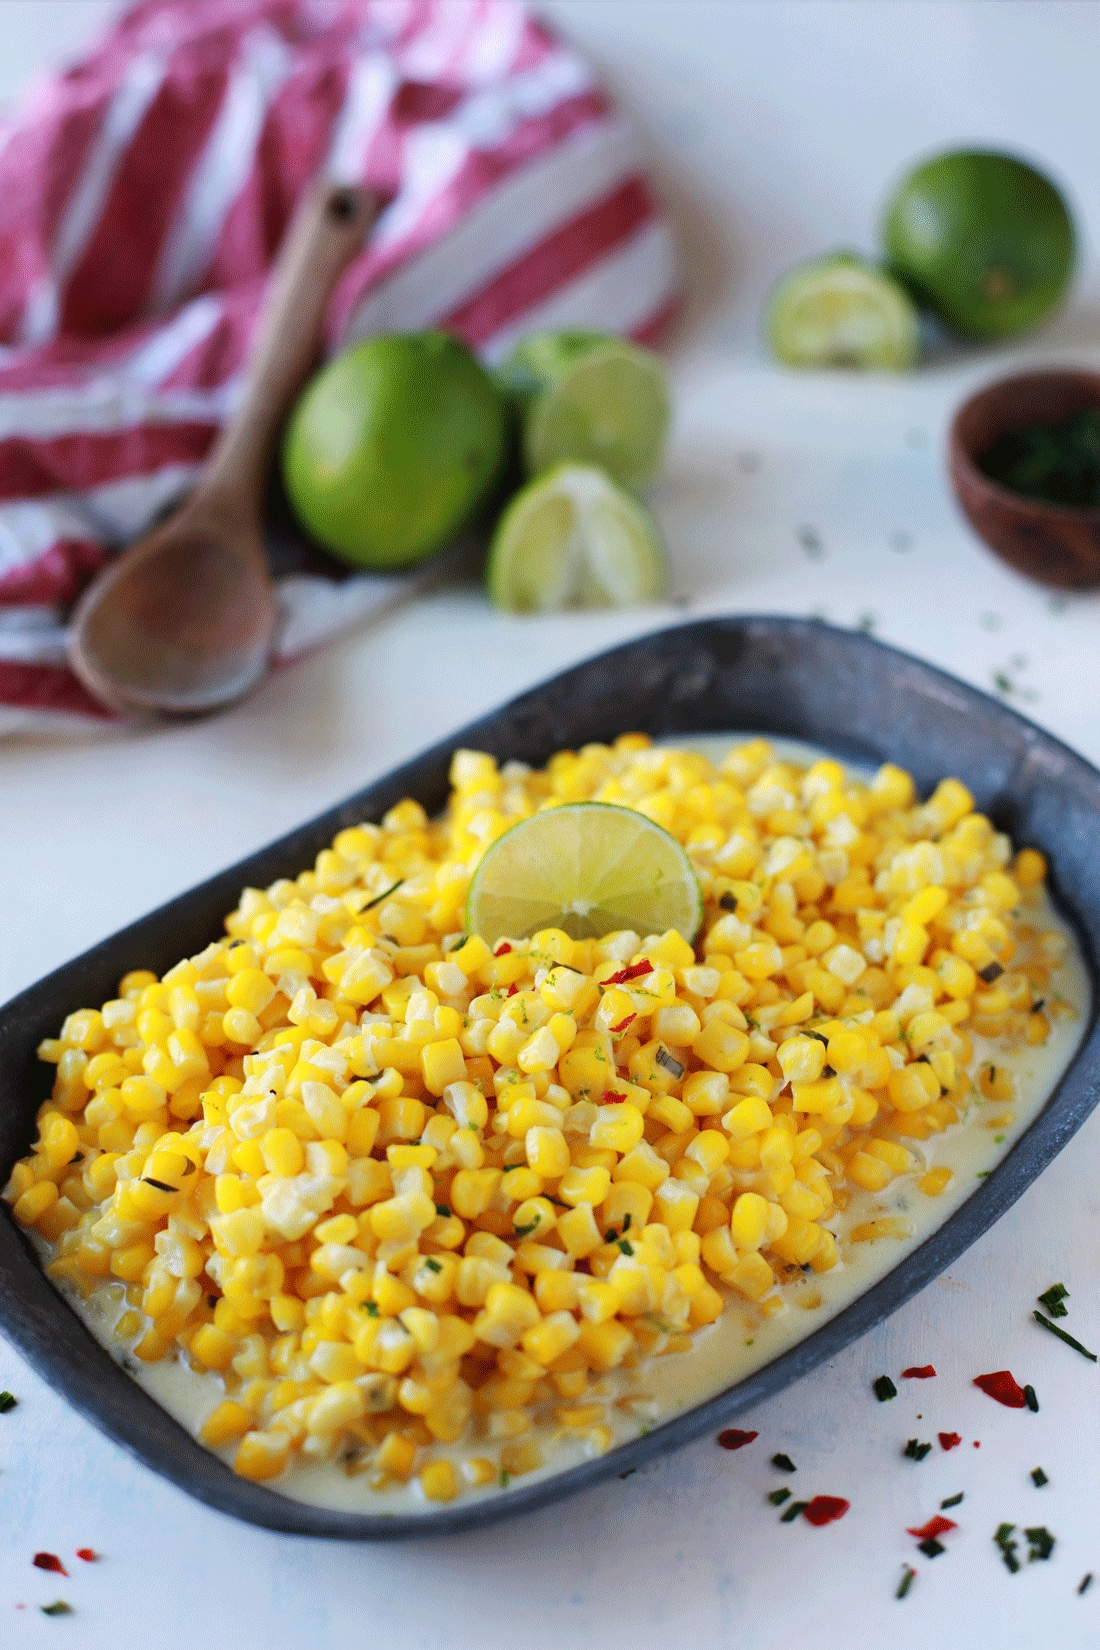 Creamed corn with lime. An easy recipe for creamy delicious corn with just a hint of heat and citrus.